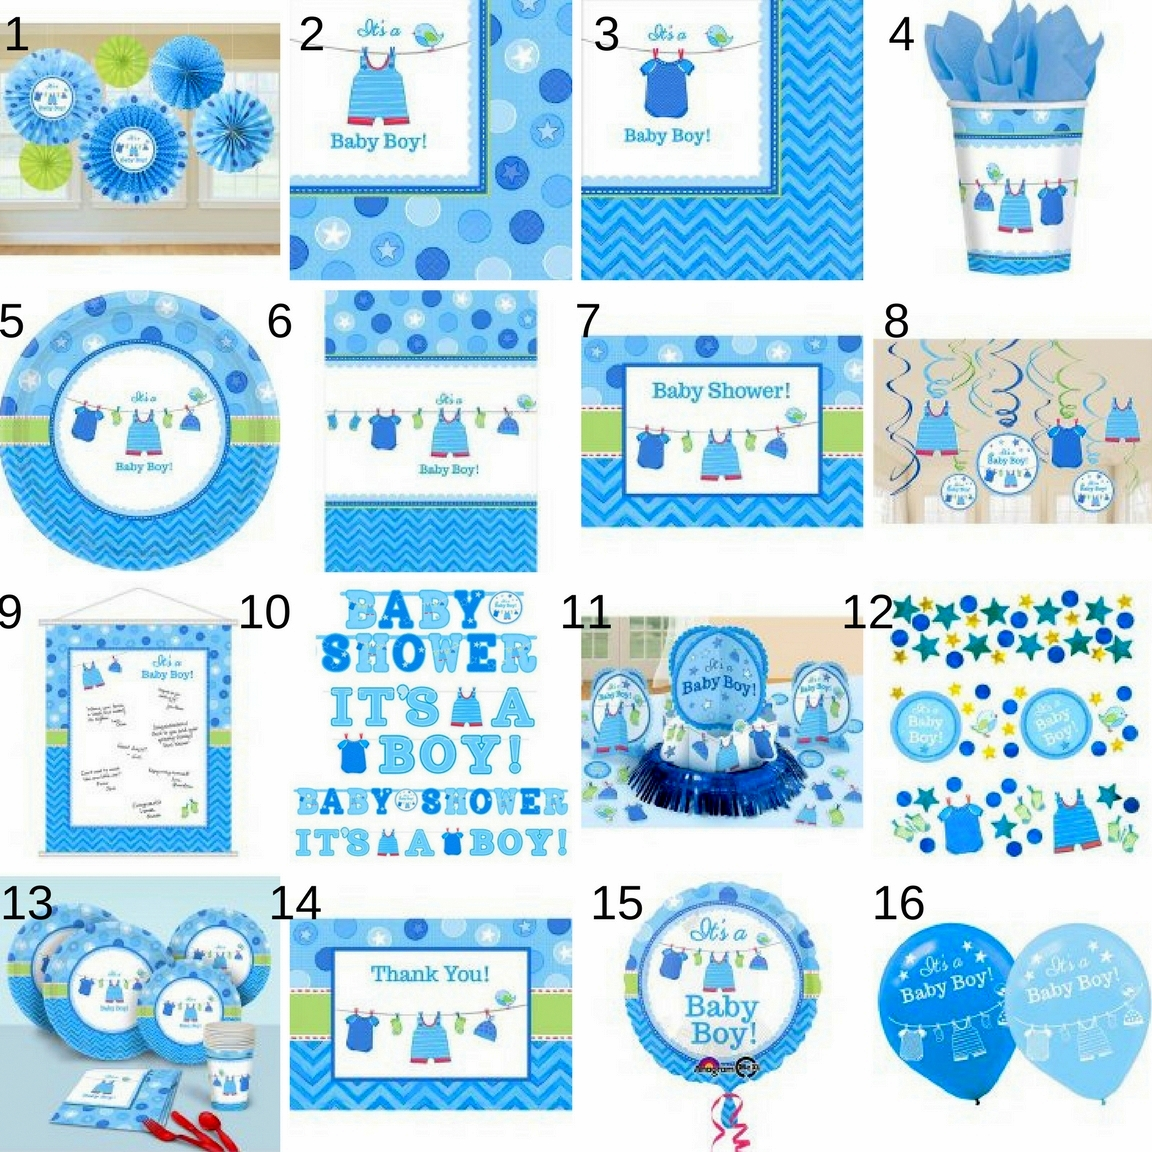 Southern Blue Celebrations: BOY BABY SHOWER PARTY SUPPLIES